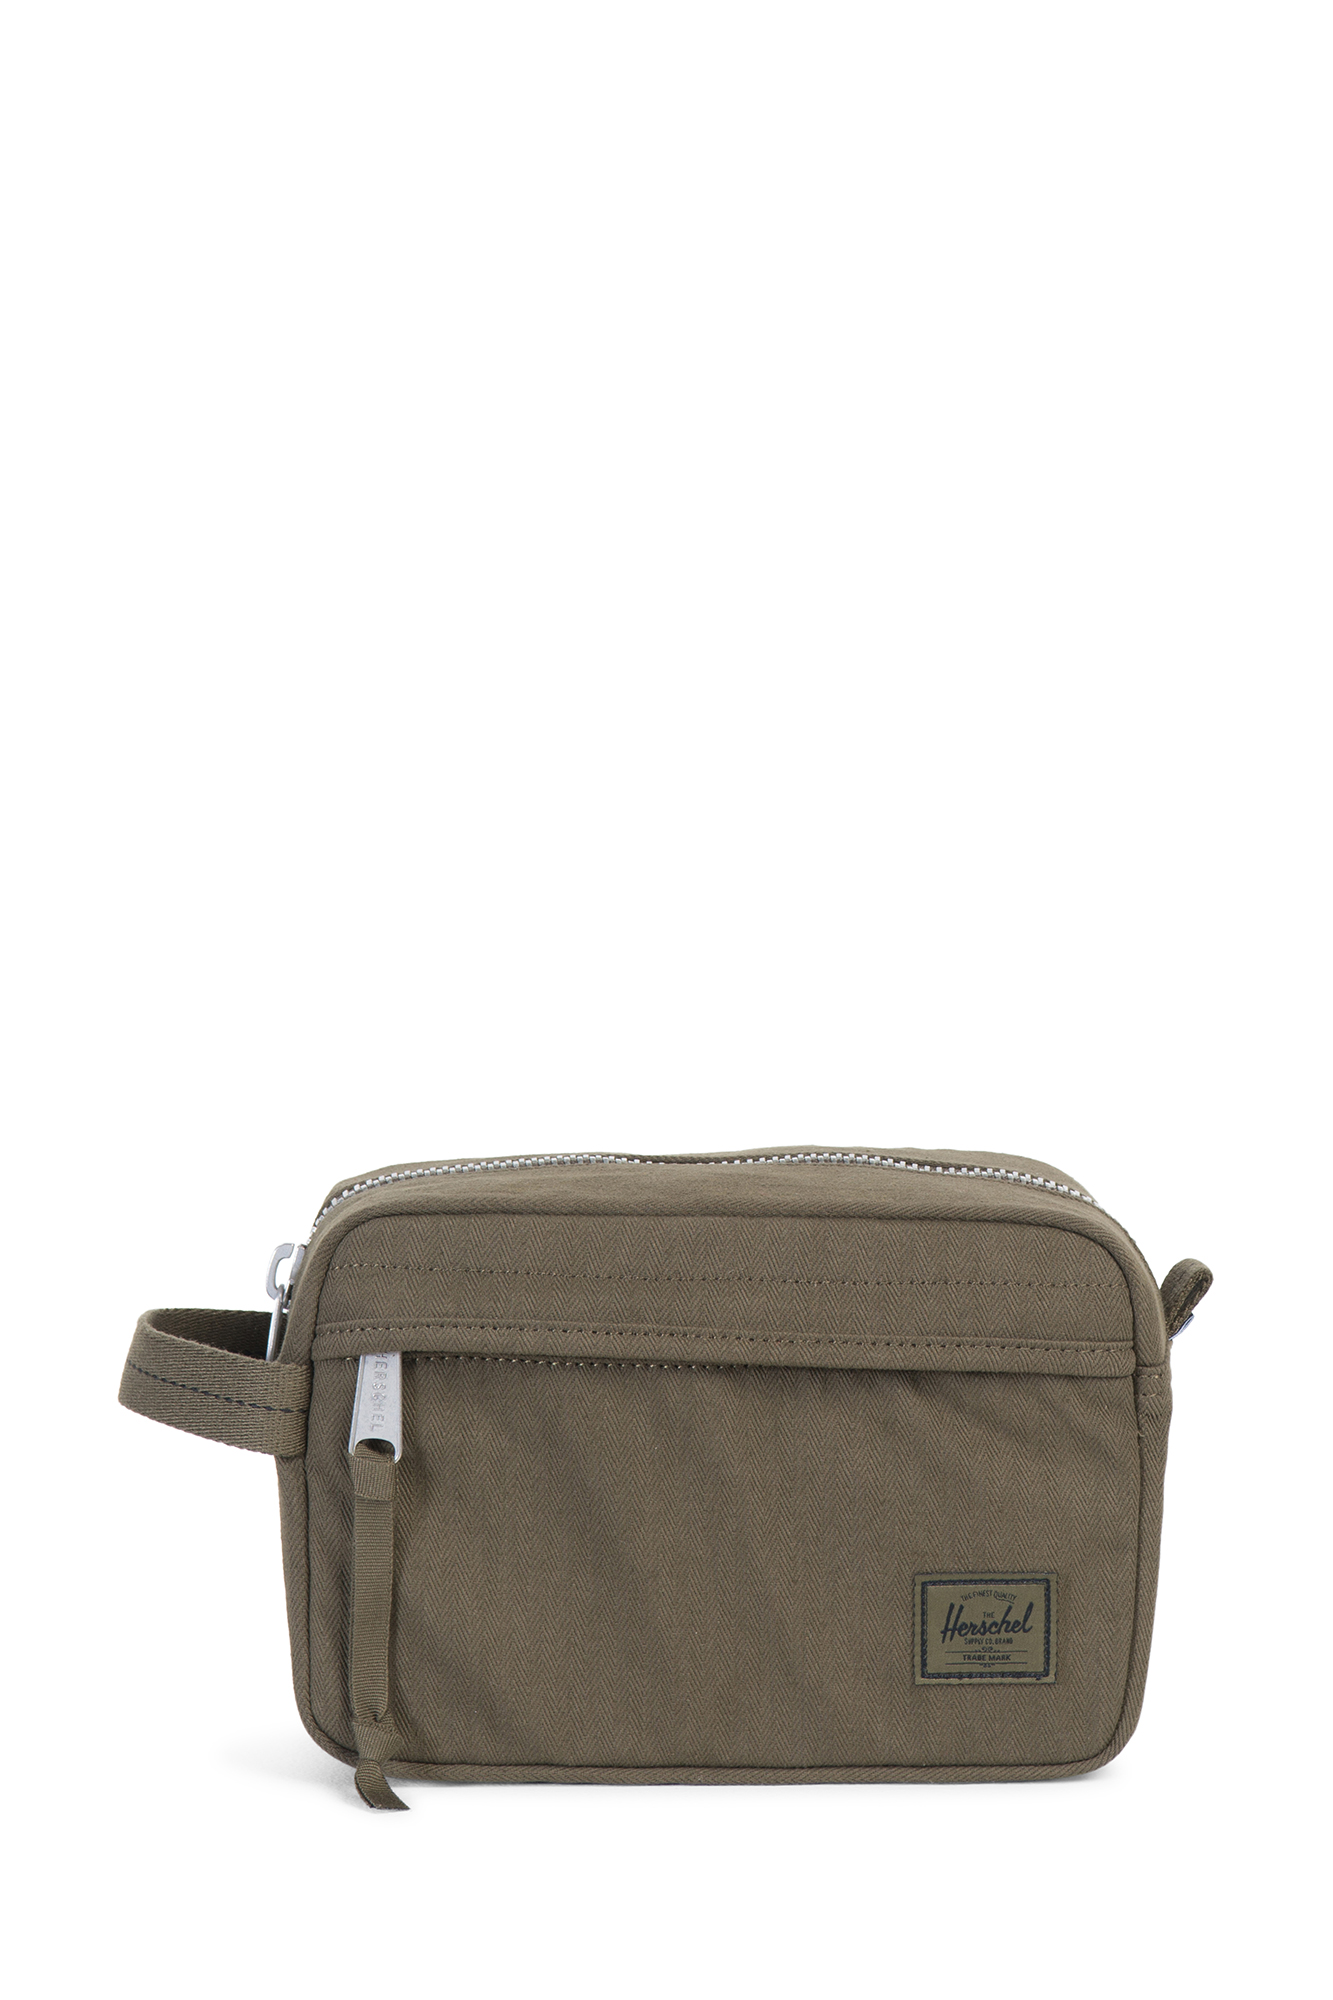 Herschel - Beauty Case Army Surplus Chapter